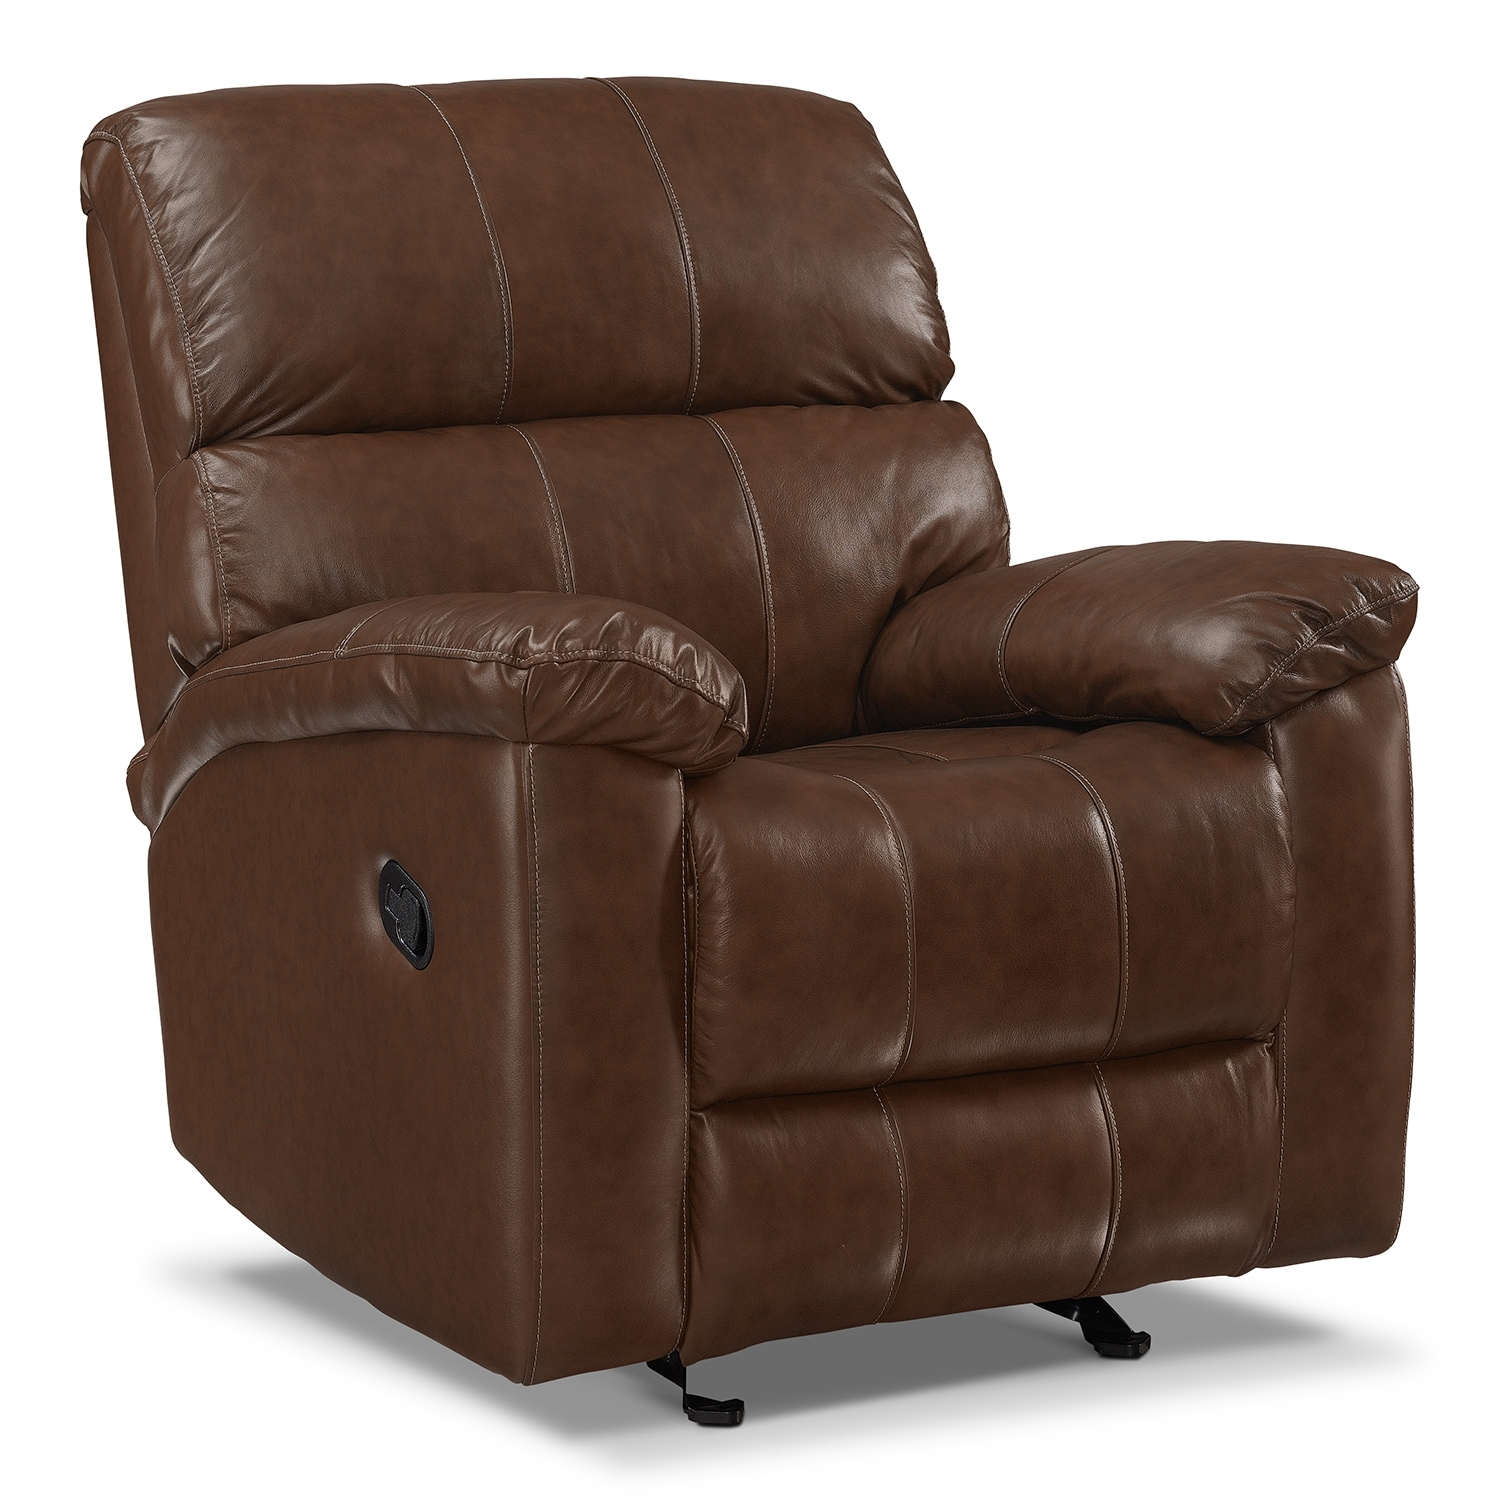 Living Room Furniture - Norfolk Rocker Recliner